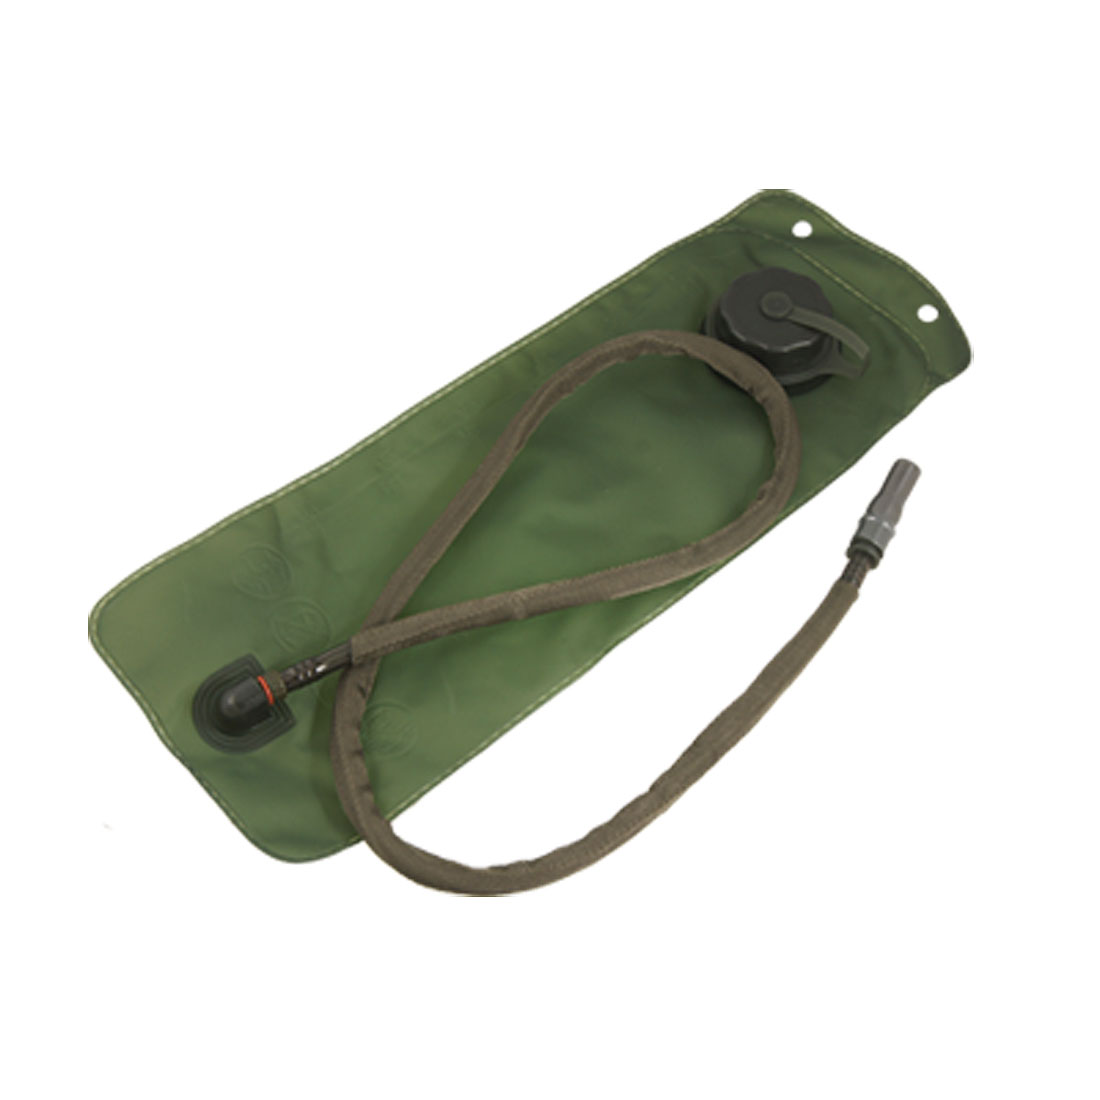 Hiking 3L Flexible Tube TPU Hydration System Water Bladder Bag Army Green